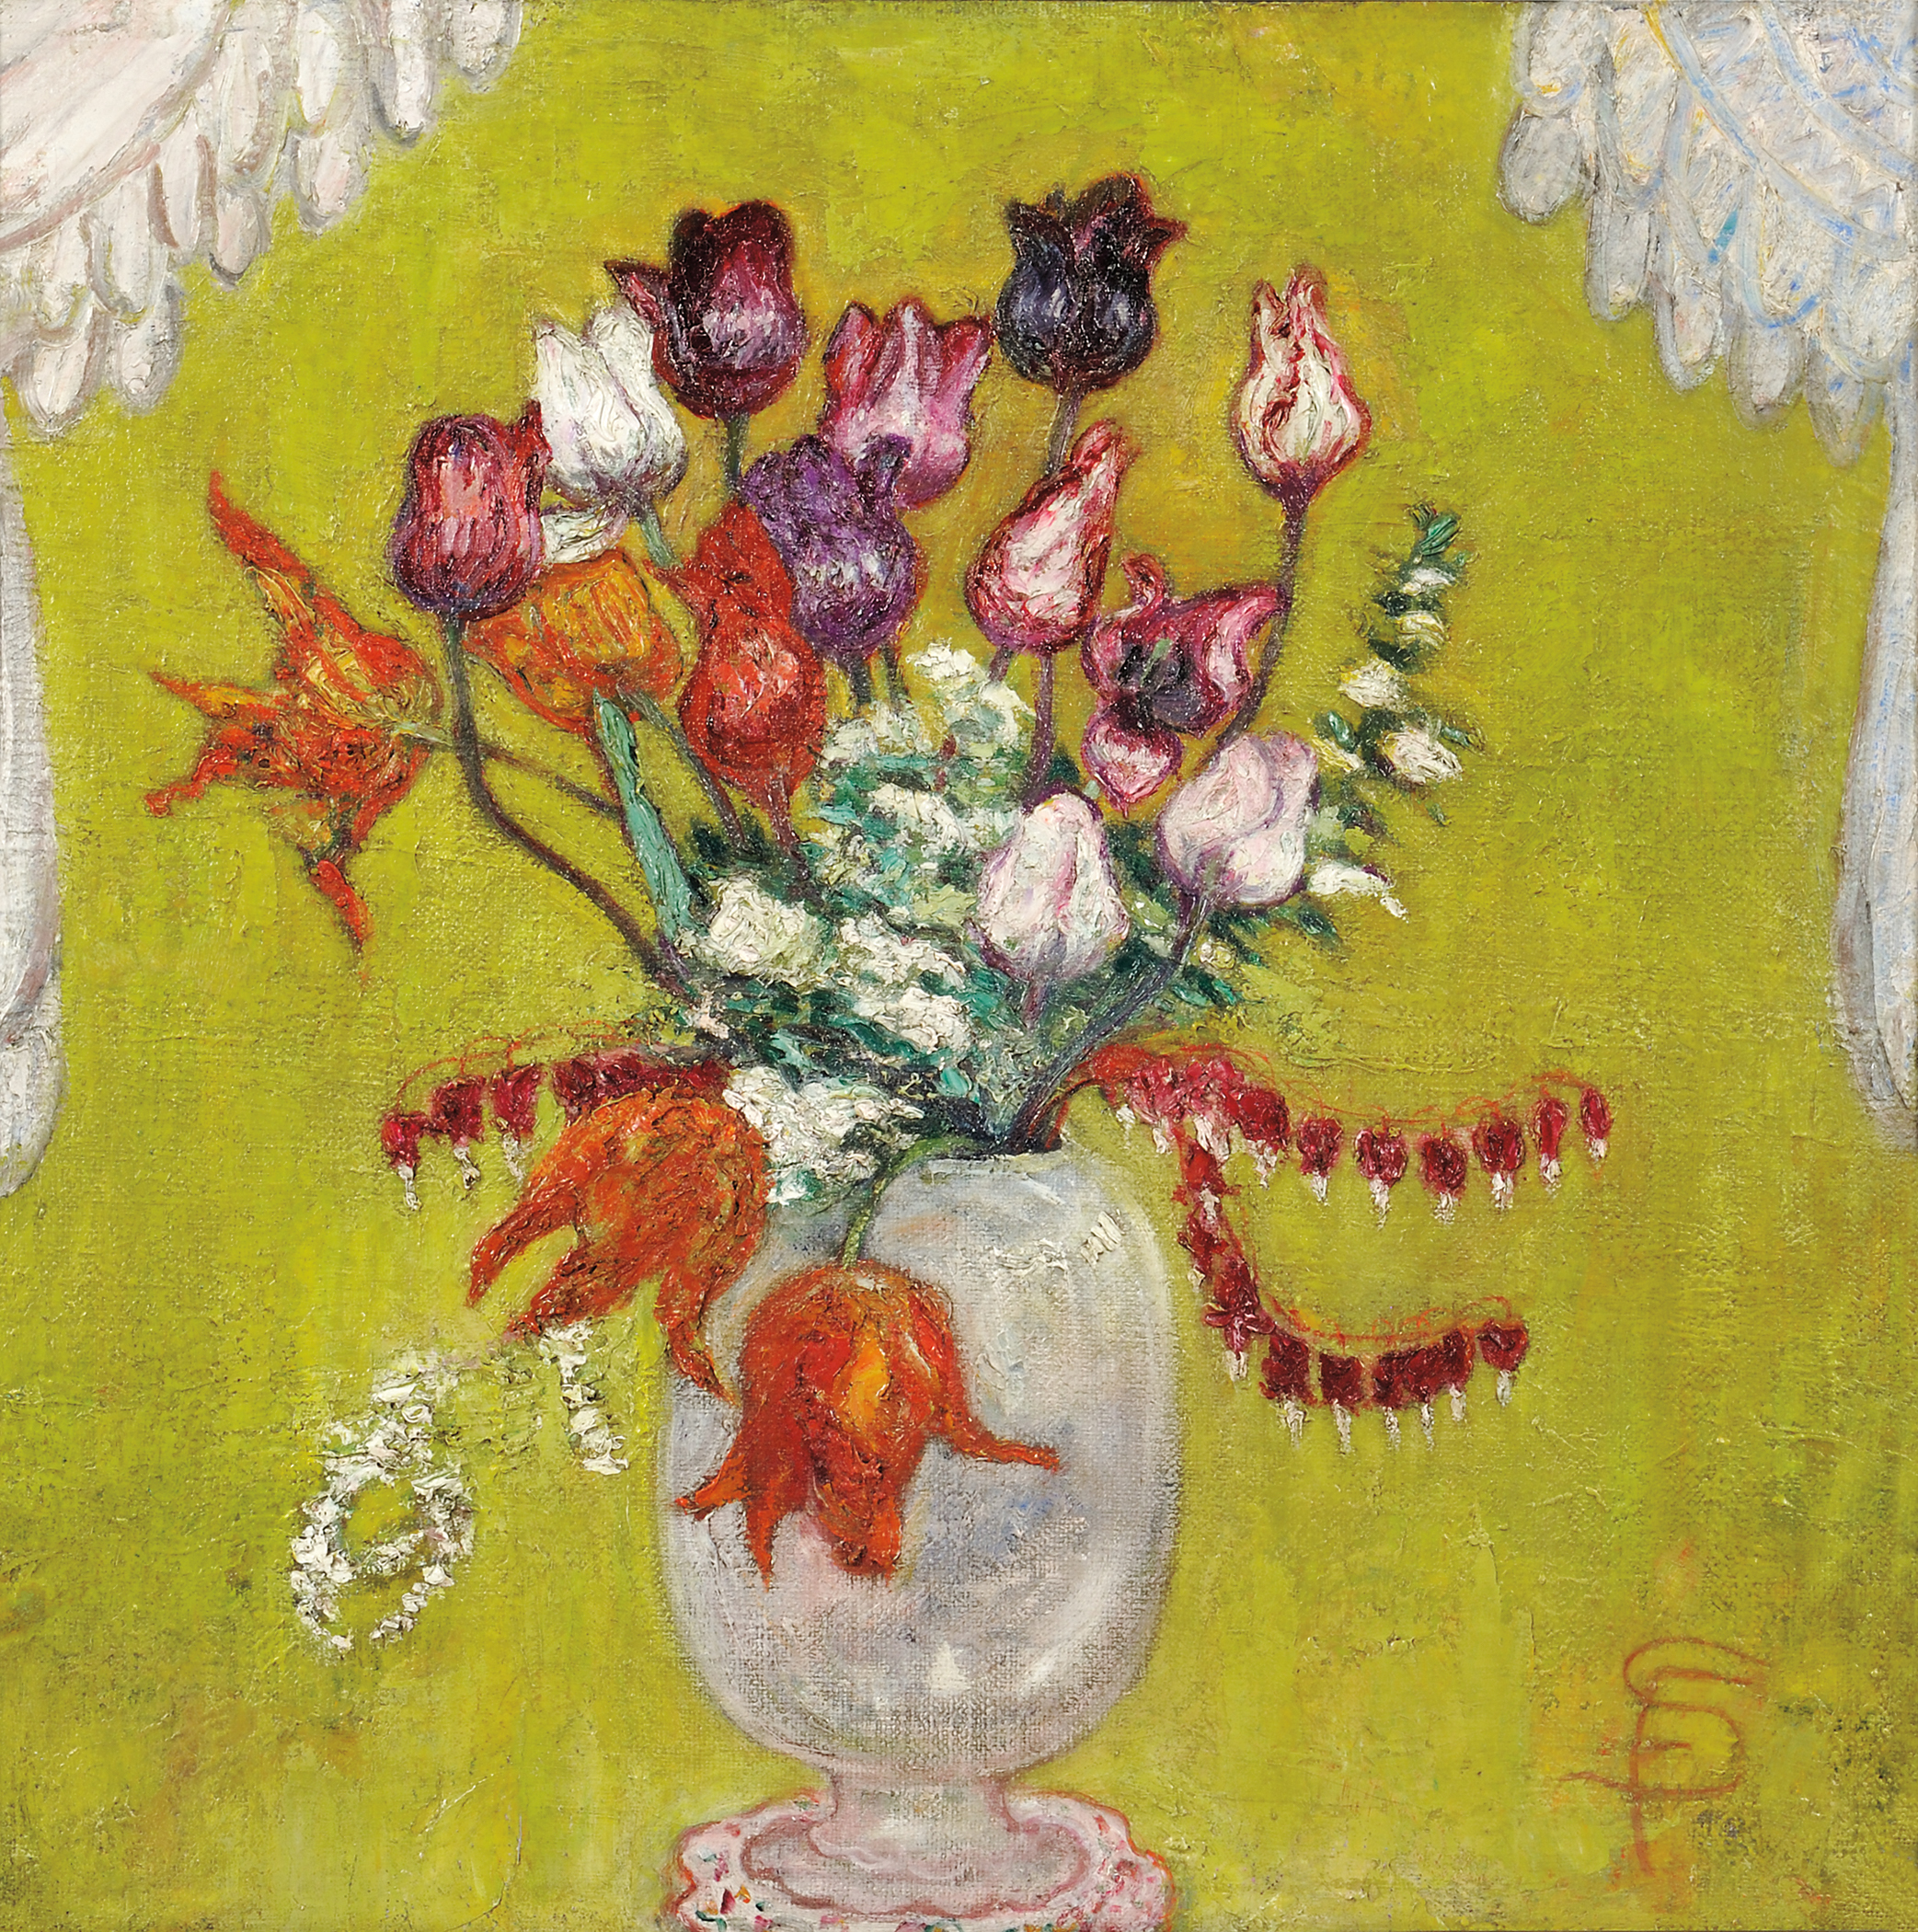 An undated floral still life by Florine Stettheimer. Skinner sold it in January 2016 for $375,000 against an estimate of $75,000 to $100,000, a record for the artist at auction.